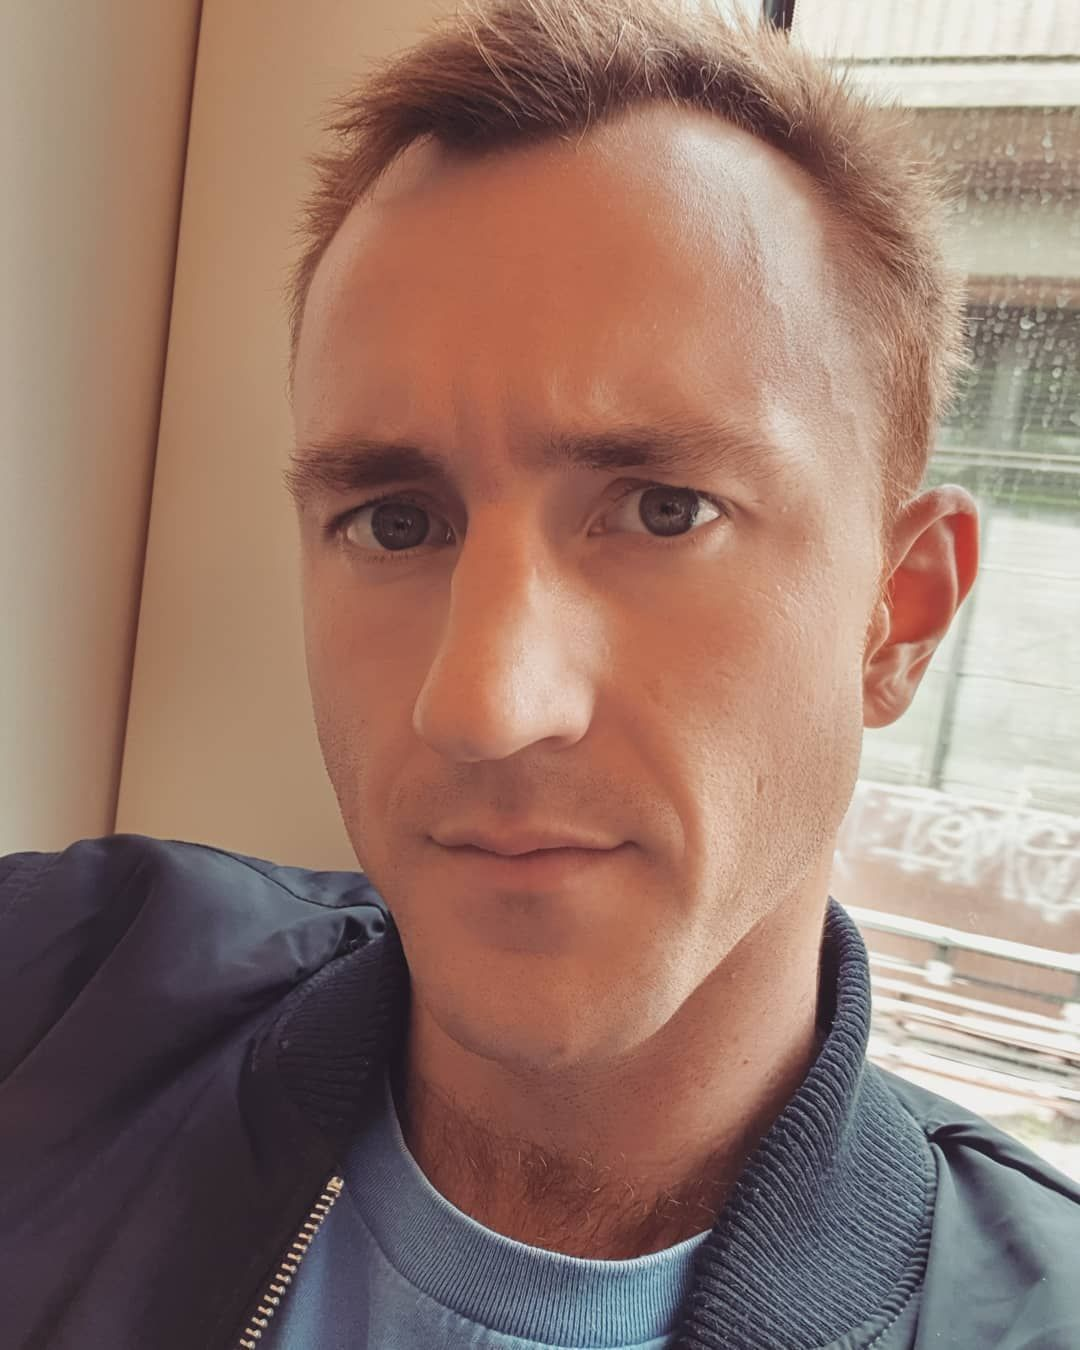 Image may contain: Made in Chelsea heirs, Made in Chelsea, MIC, family, fortunes, money, business, company, worth, cash, inheritance, Francis Boulle, mining, diamonds, Clothing, Apparel, Man, Human, Person, Face